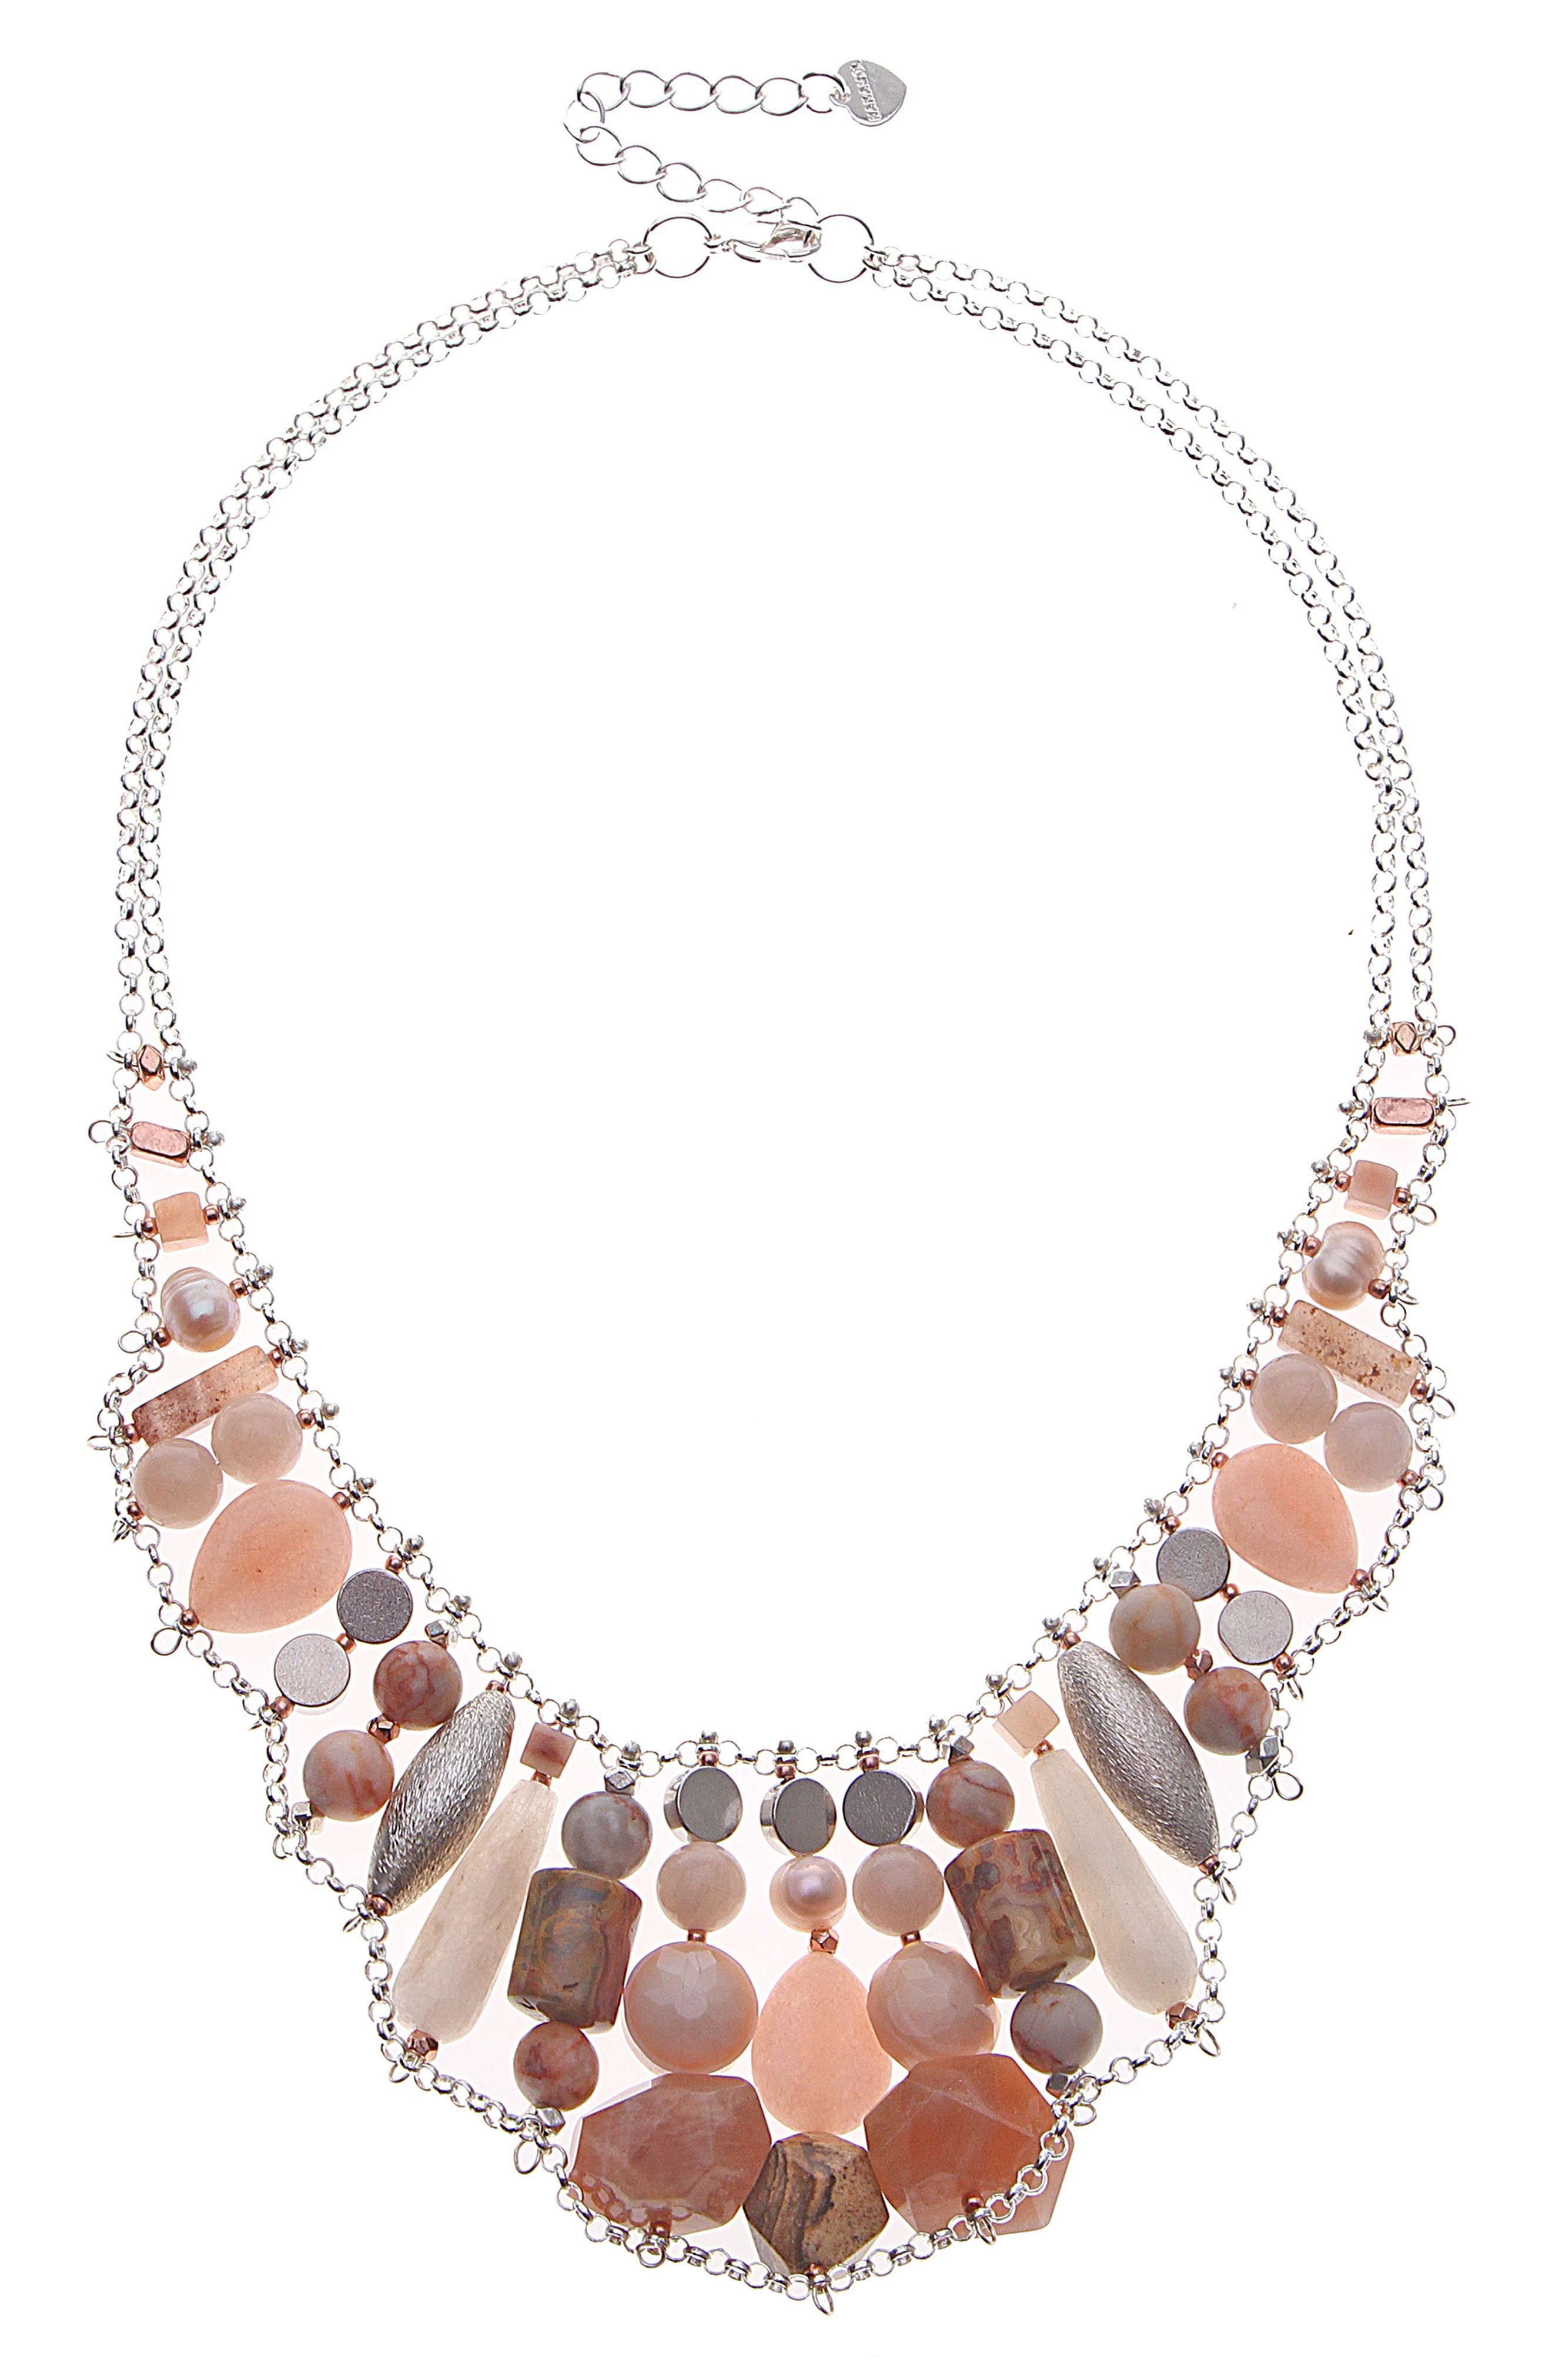 Stone & Freshwater Pearl Collar Necklace,                             Main thumbnail 1, color,                             250